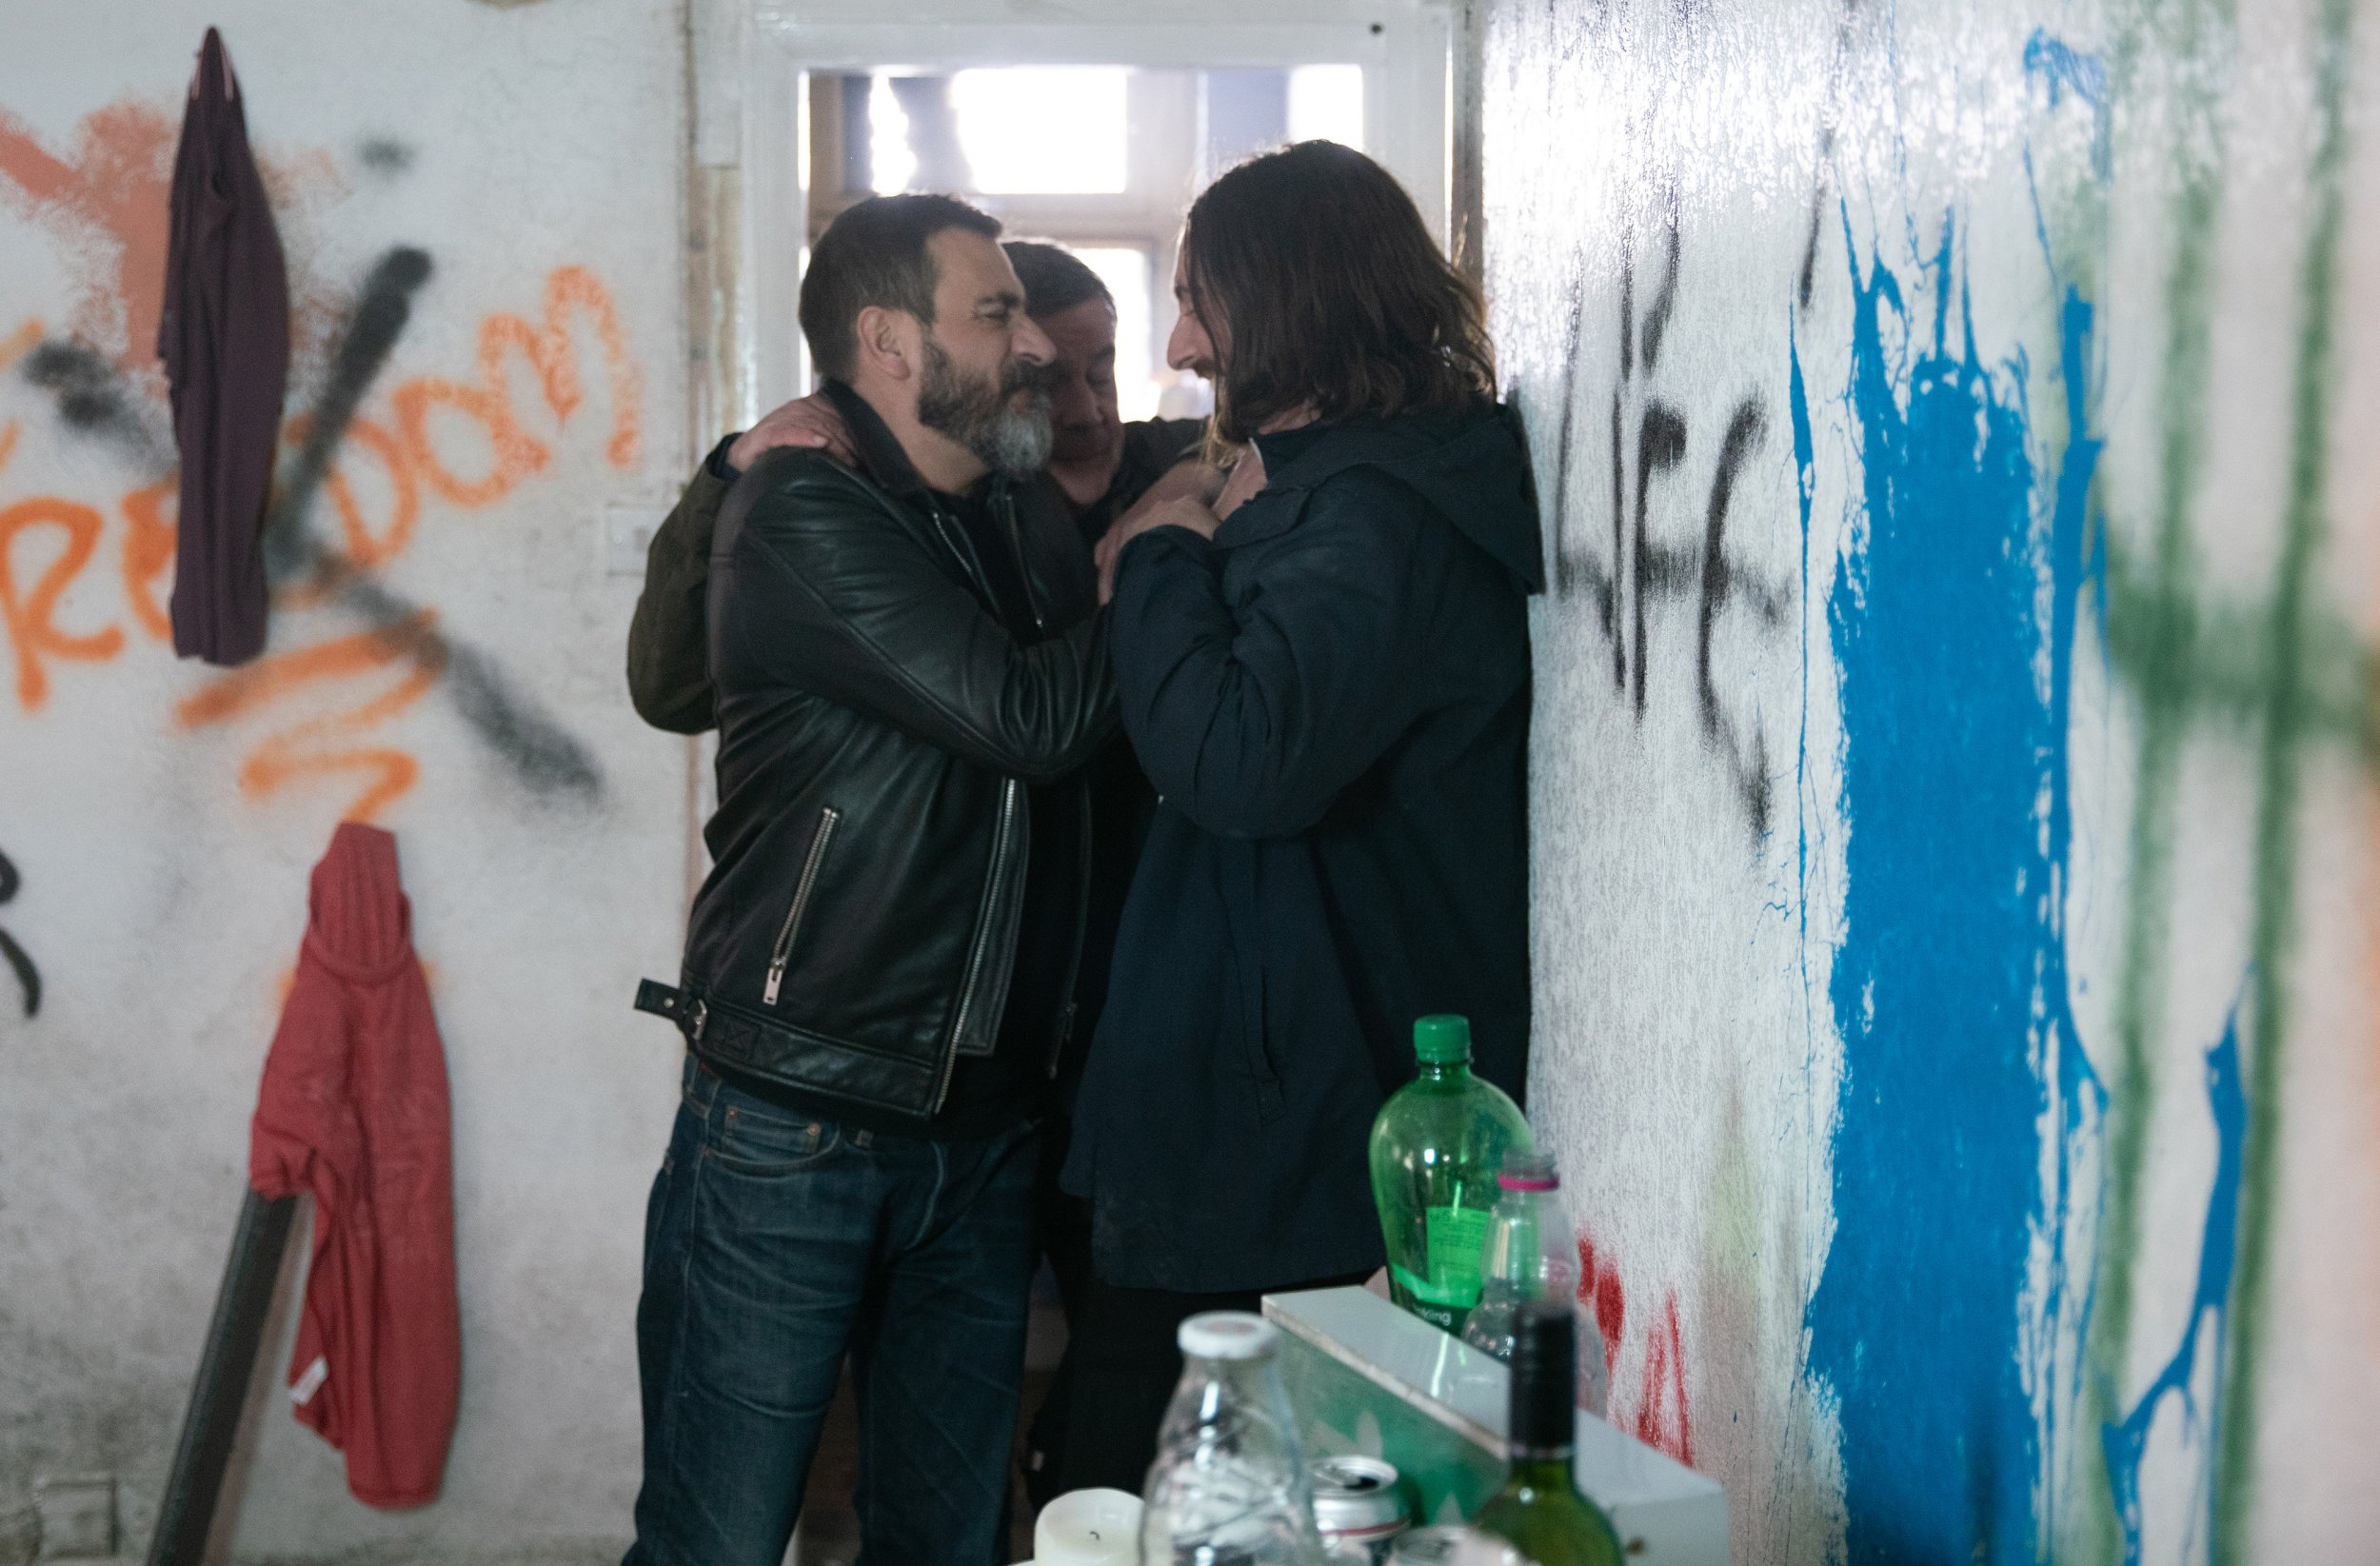 Coronation Street spoilers: Peter Barlow turns violent over missing Carla Connor